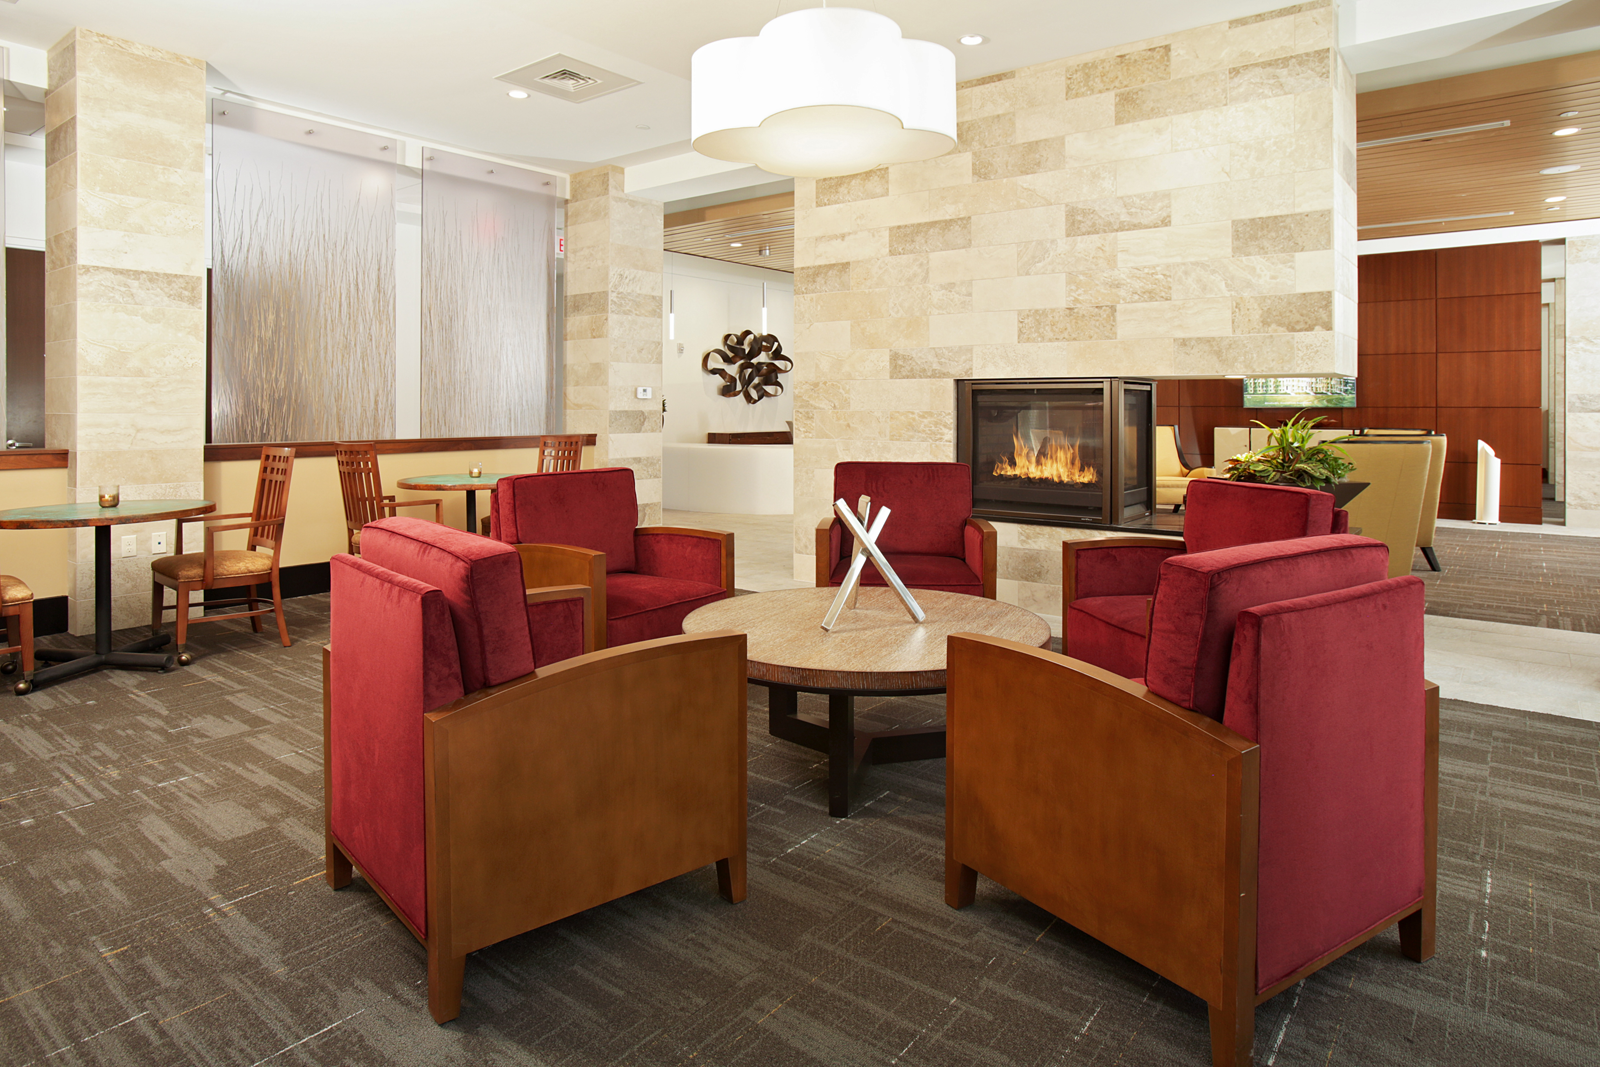 Breakfast area designed for an independent living retirement community